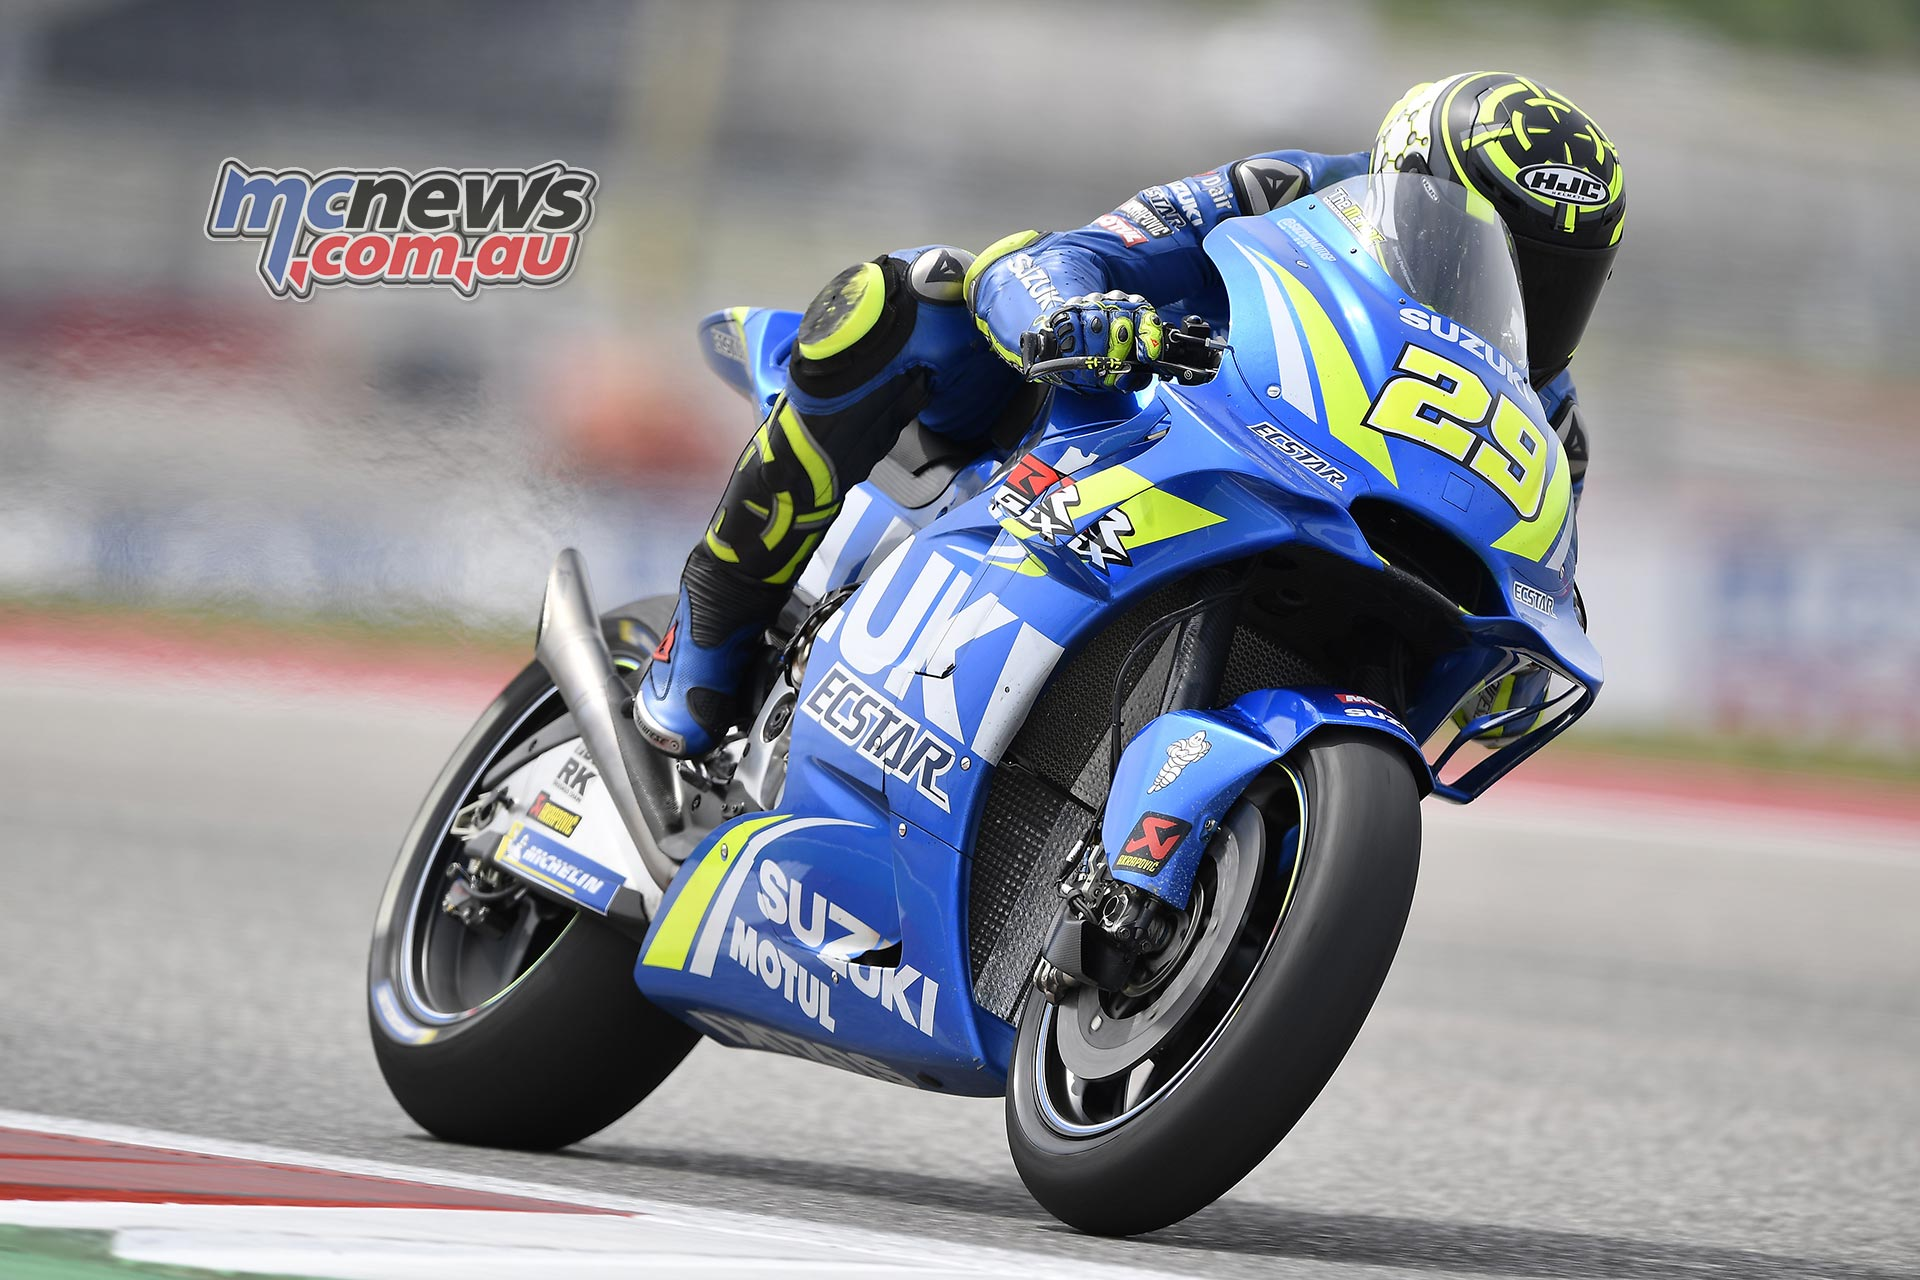 Iannone Topples Marquez To Top Friday At Cota Mcnews Com Au